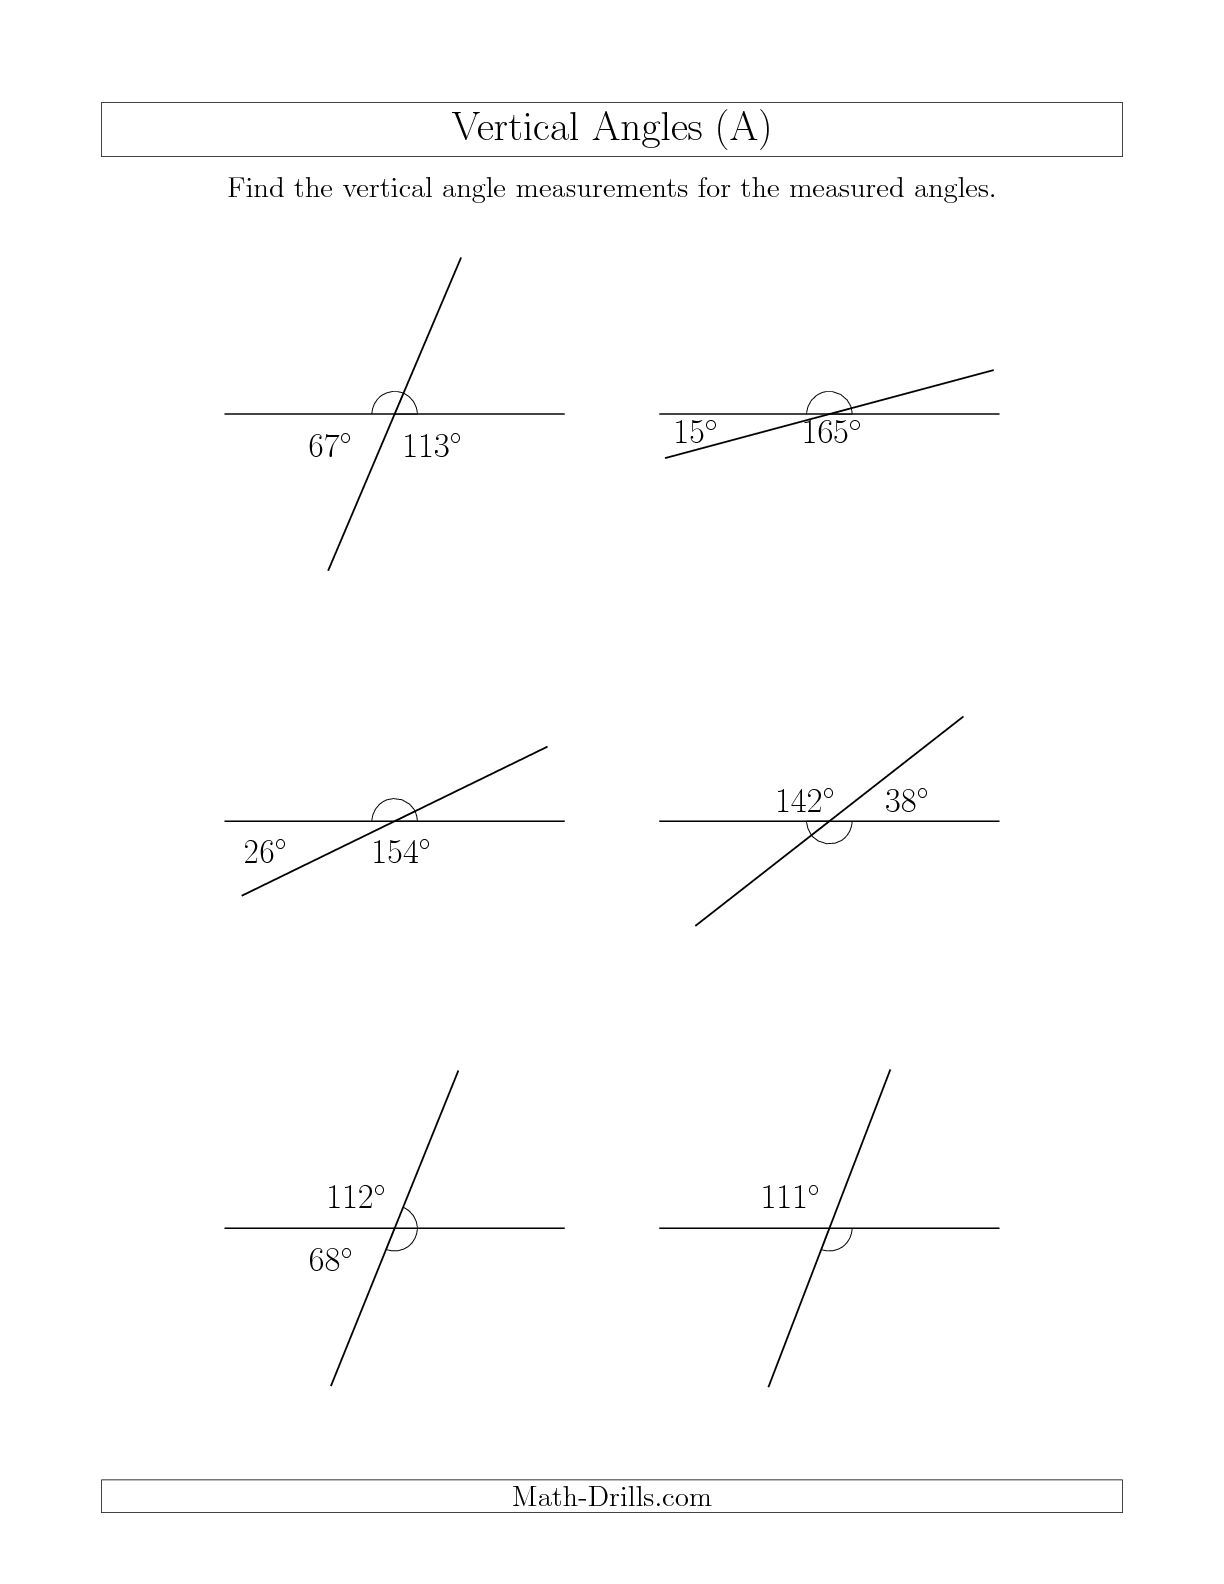 hight resolution of The Vertical Angle Relationships (A) math worksheet from the Geometry  Worksheets page at Math-Drills.com.   Angles worksheet